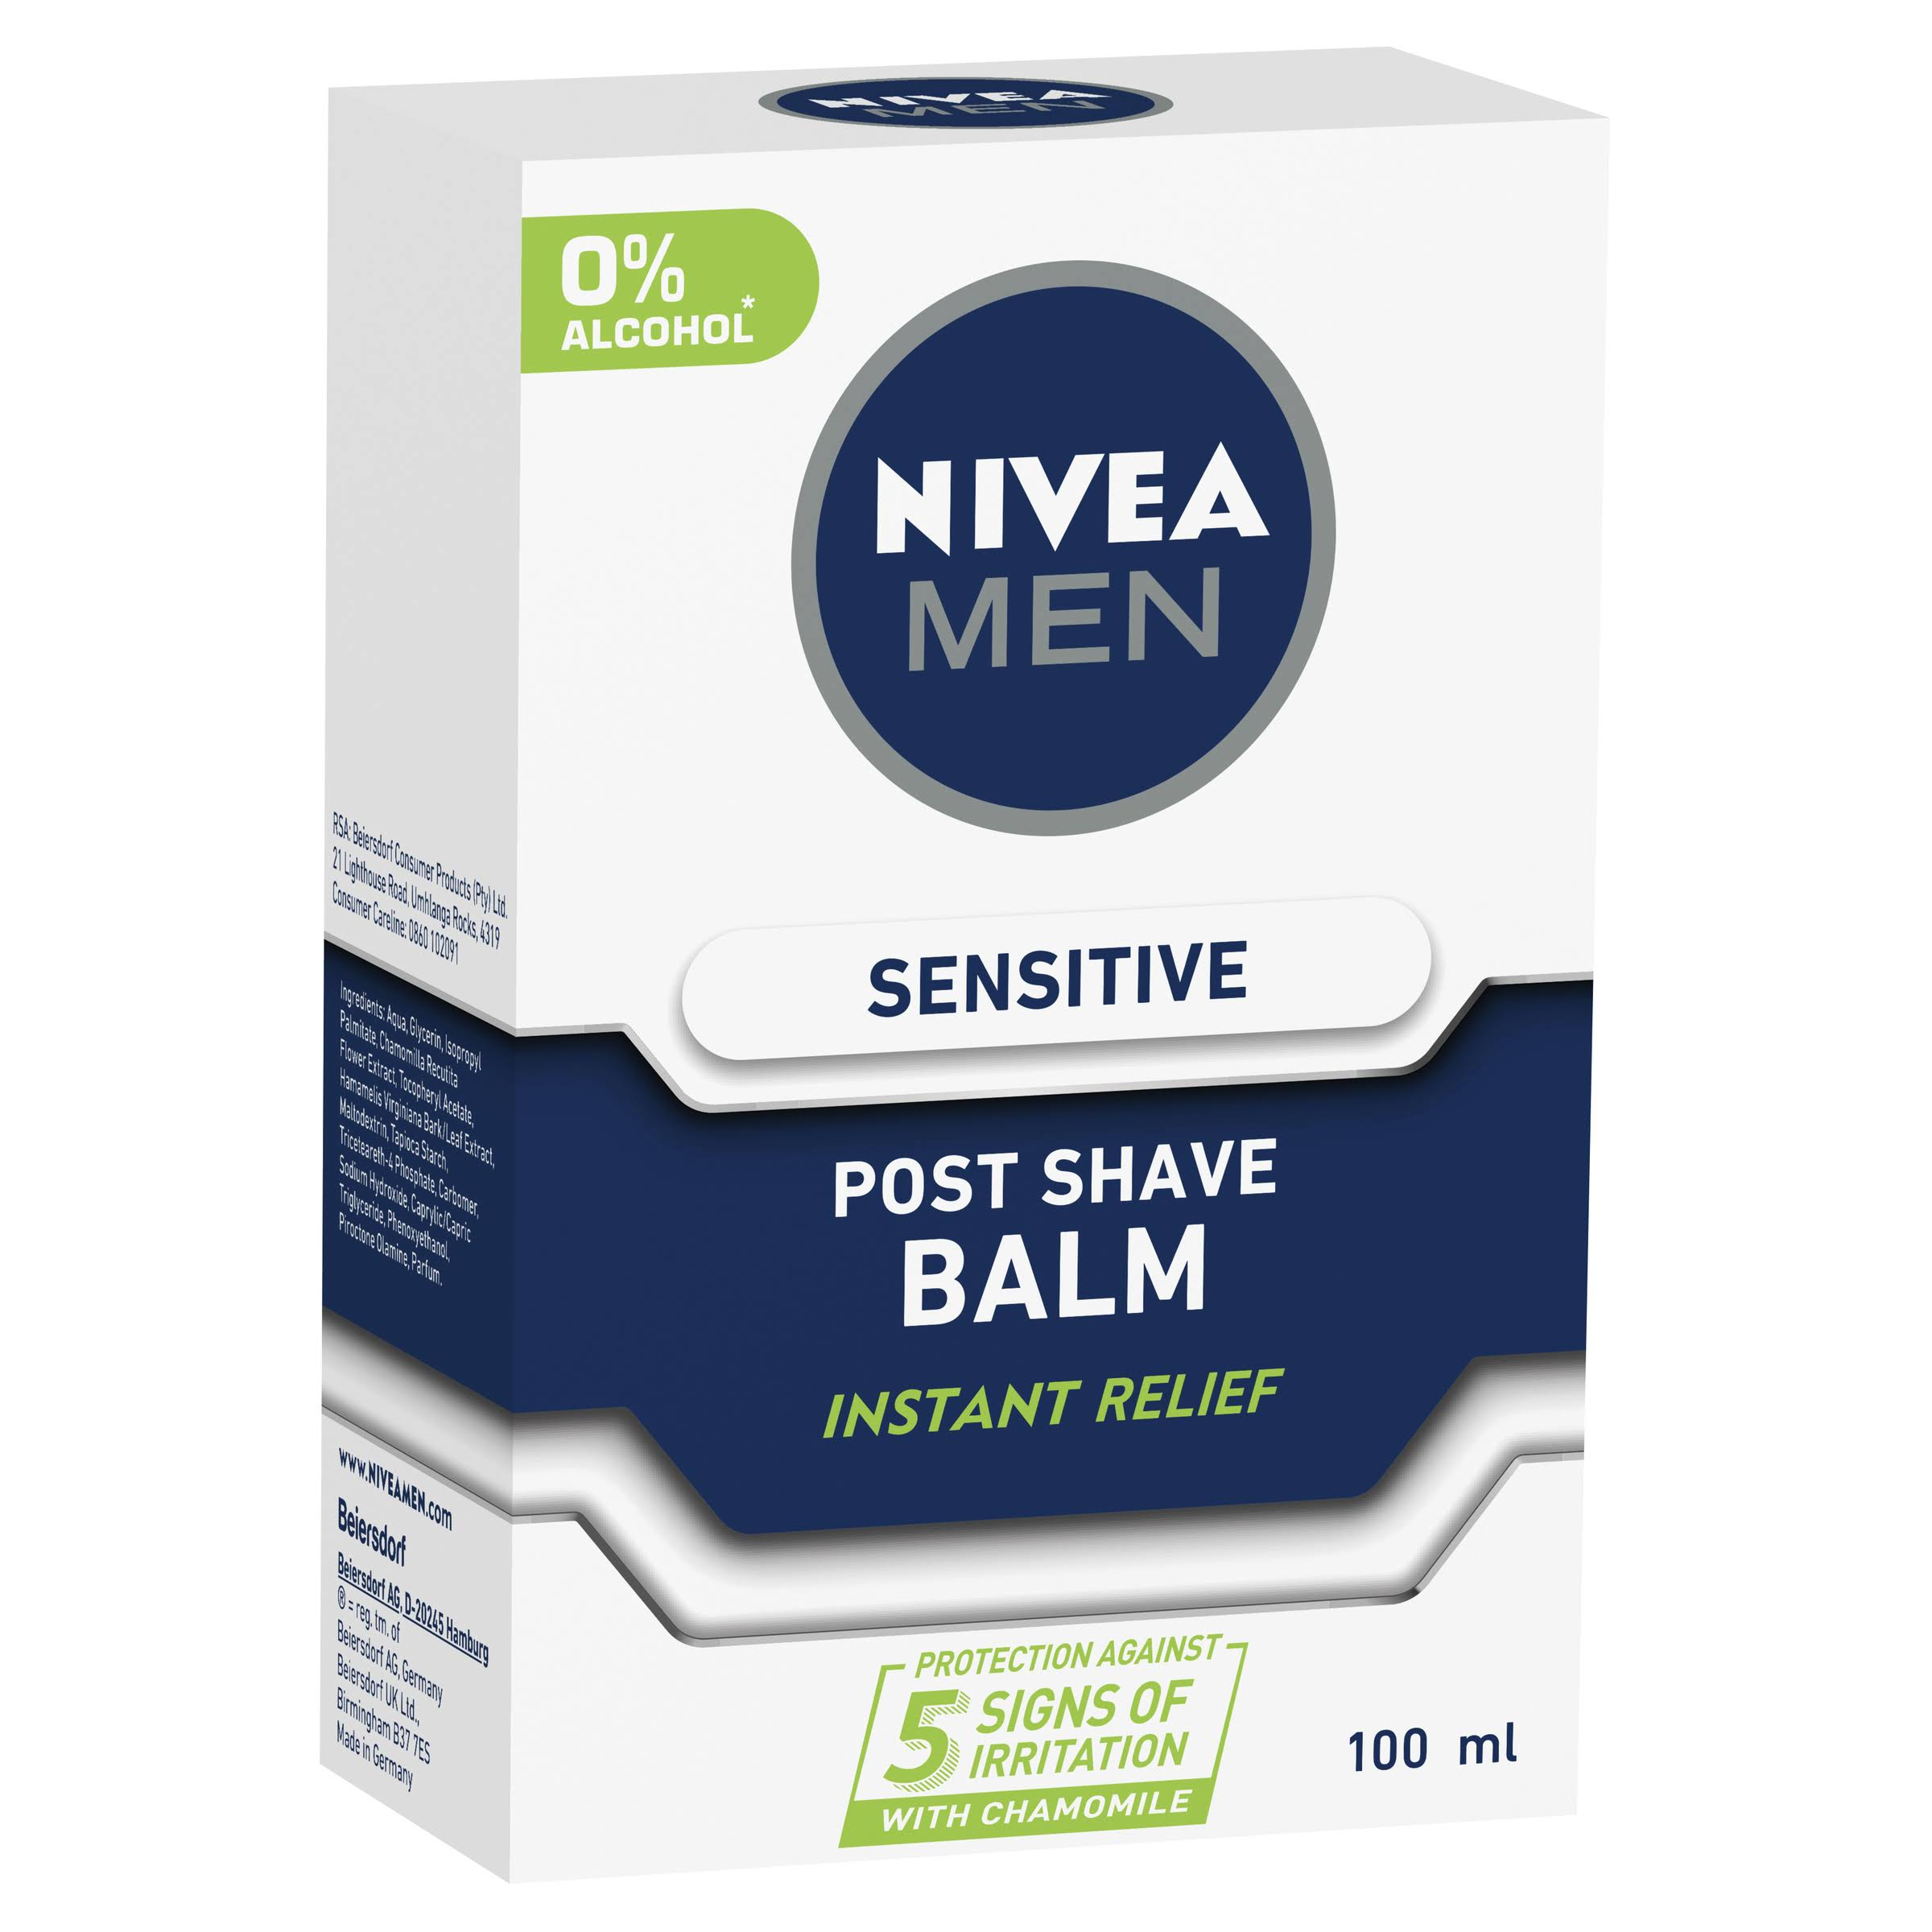 Nivea Men Sensitive Post Shave Balm - 100ml